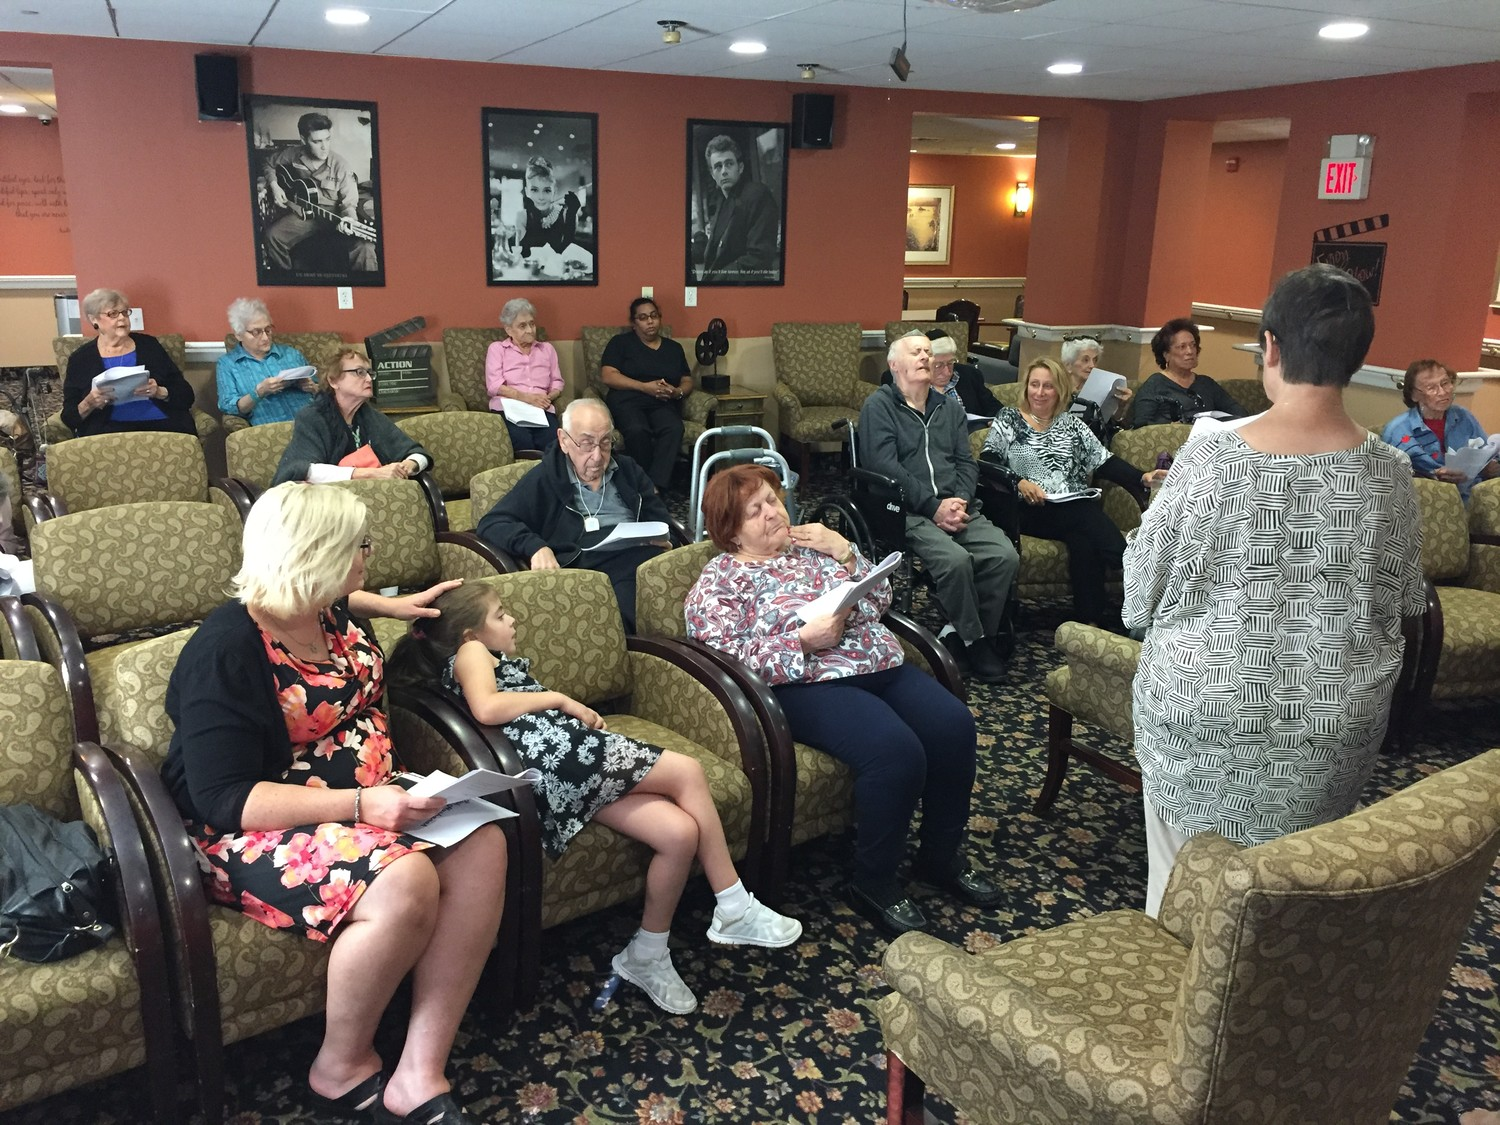 Barbara Prins, right, helped lead a Rosh Hashanah service for residents at Rockville Centre's Maple Pointe Assisted Living center on Sept. 22.